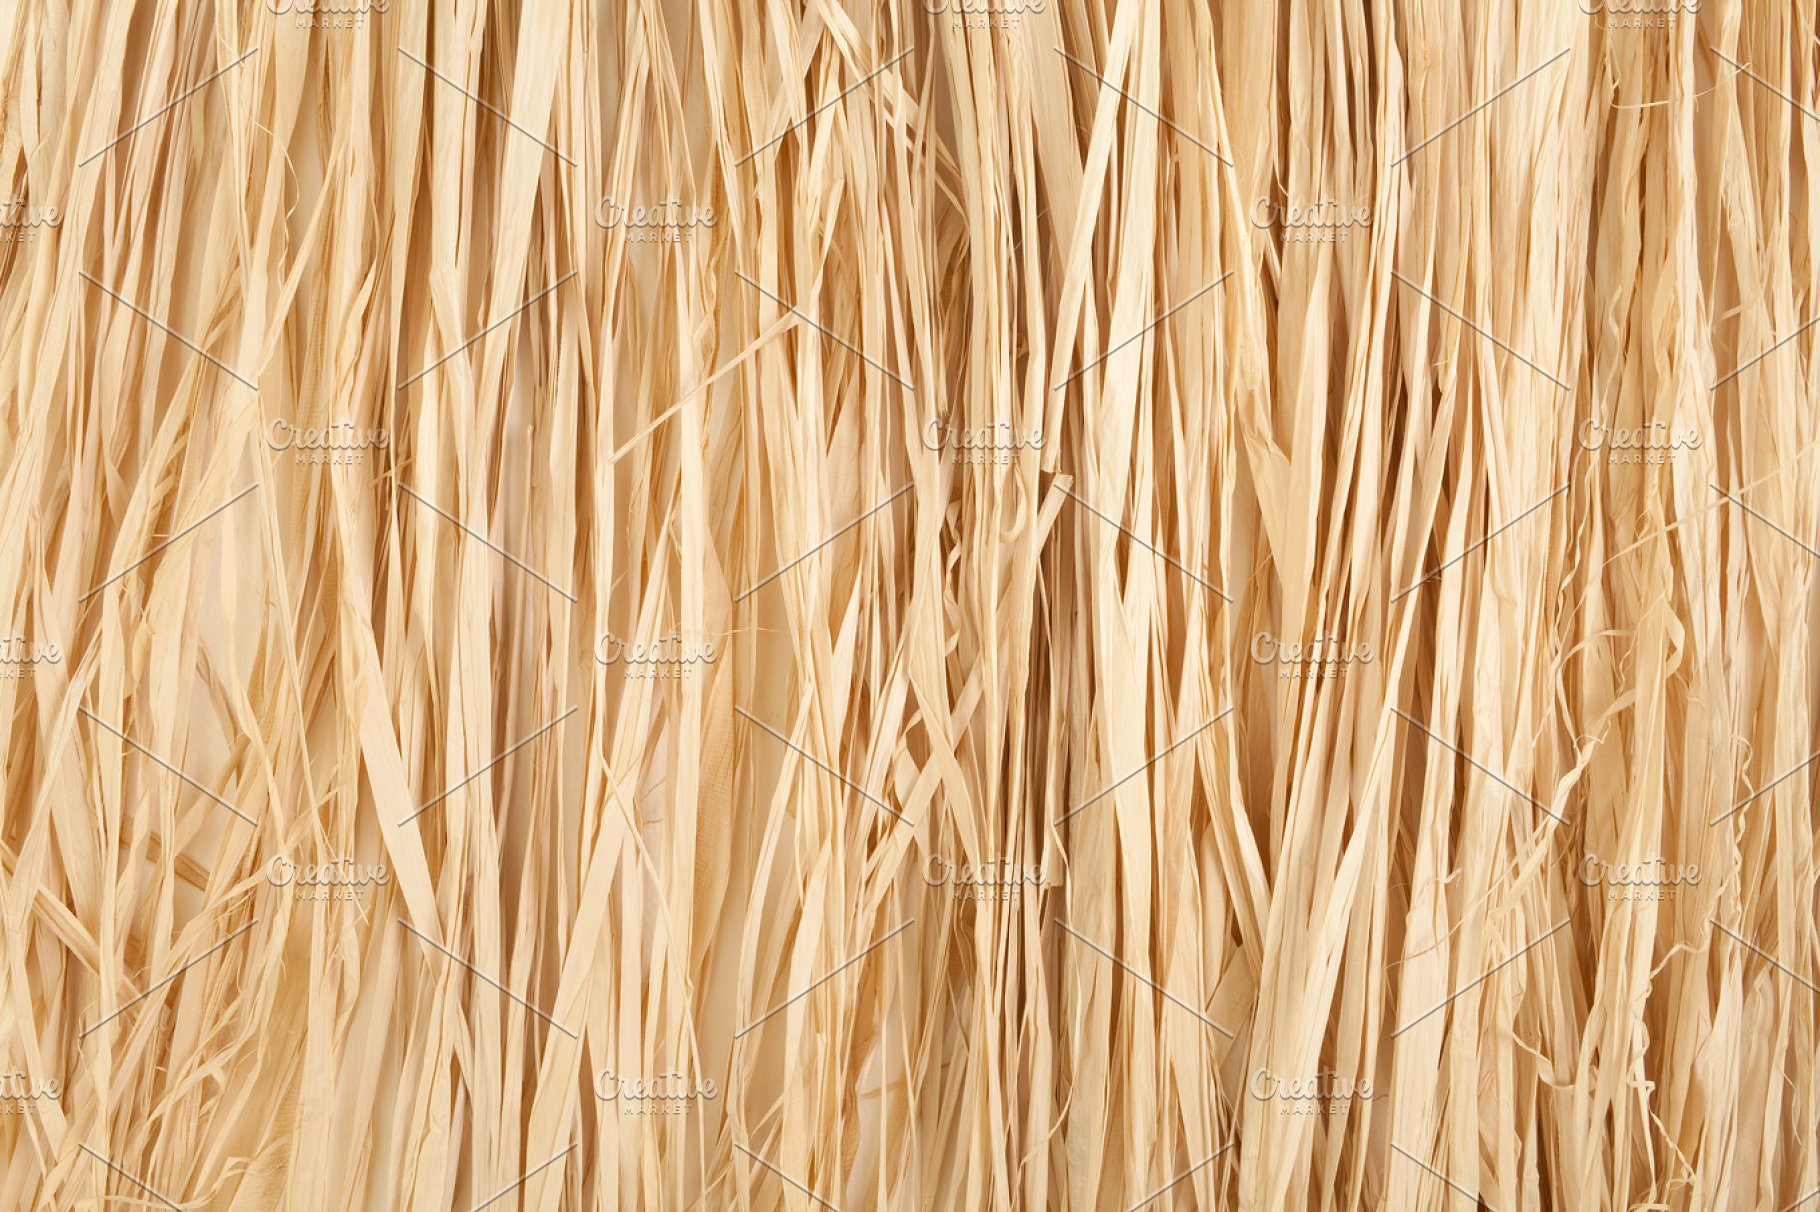 Raffia Background Abstract Photos Creative Market 1820x1212